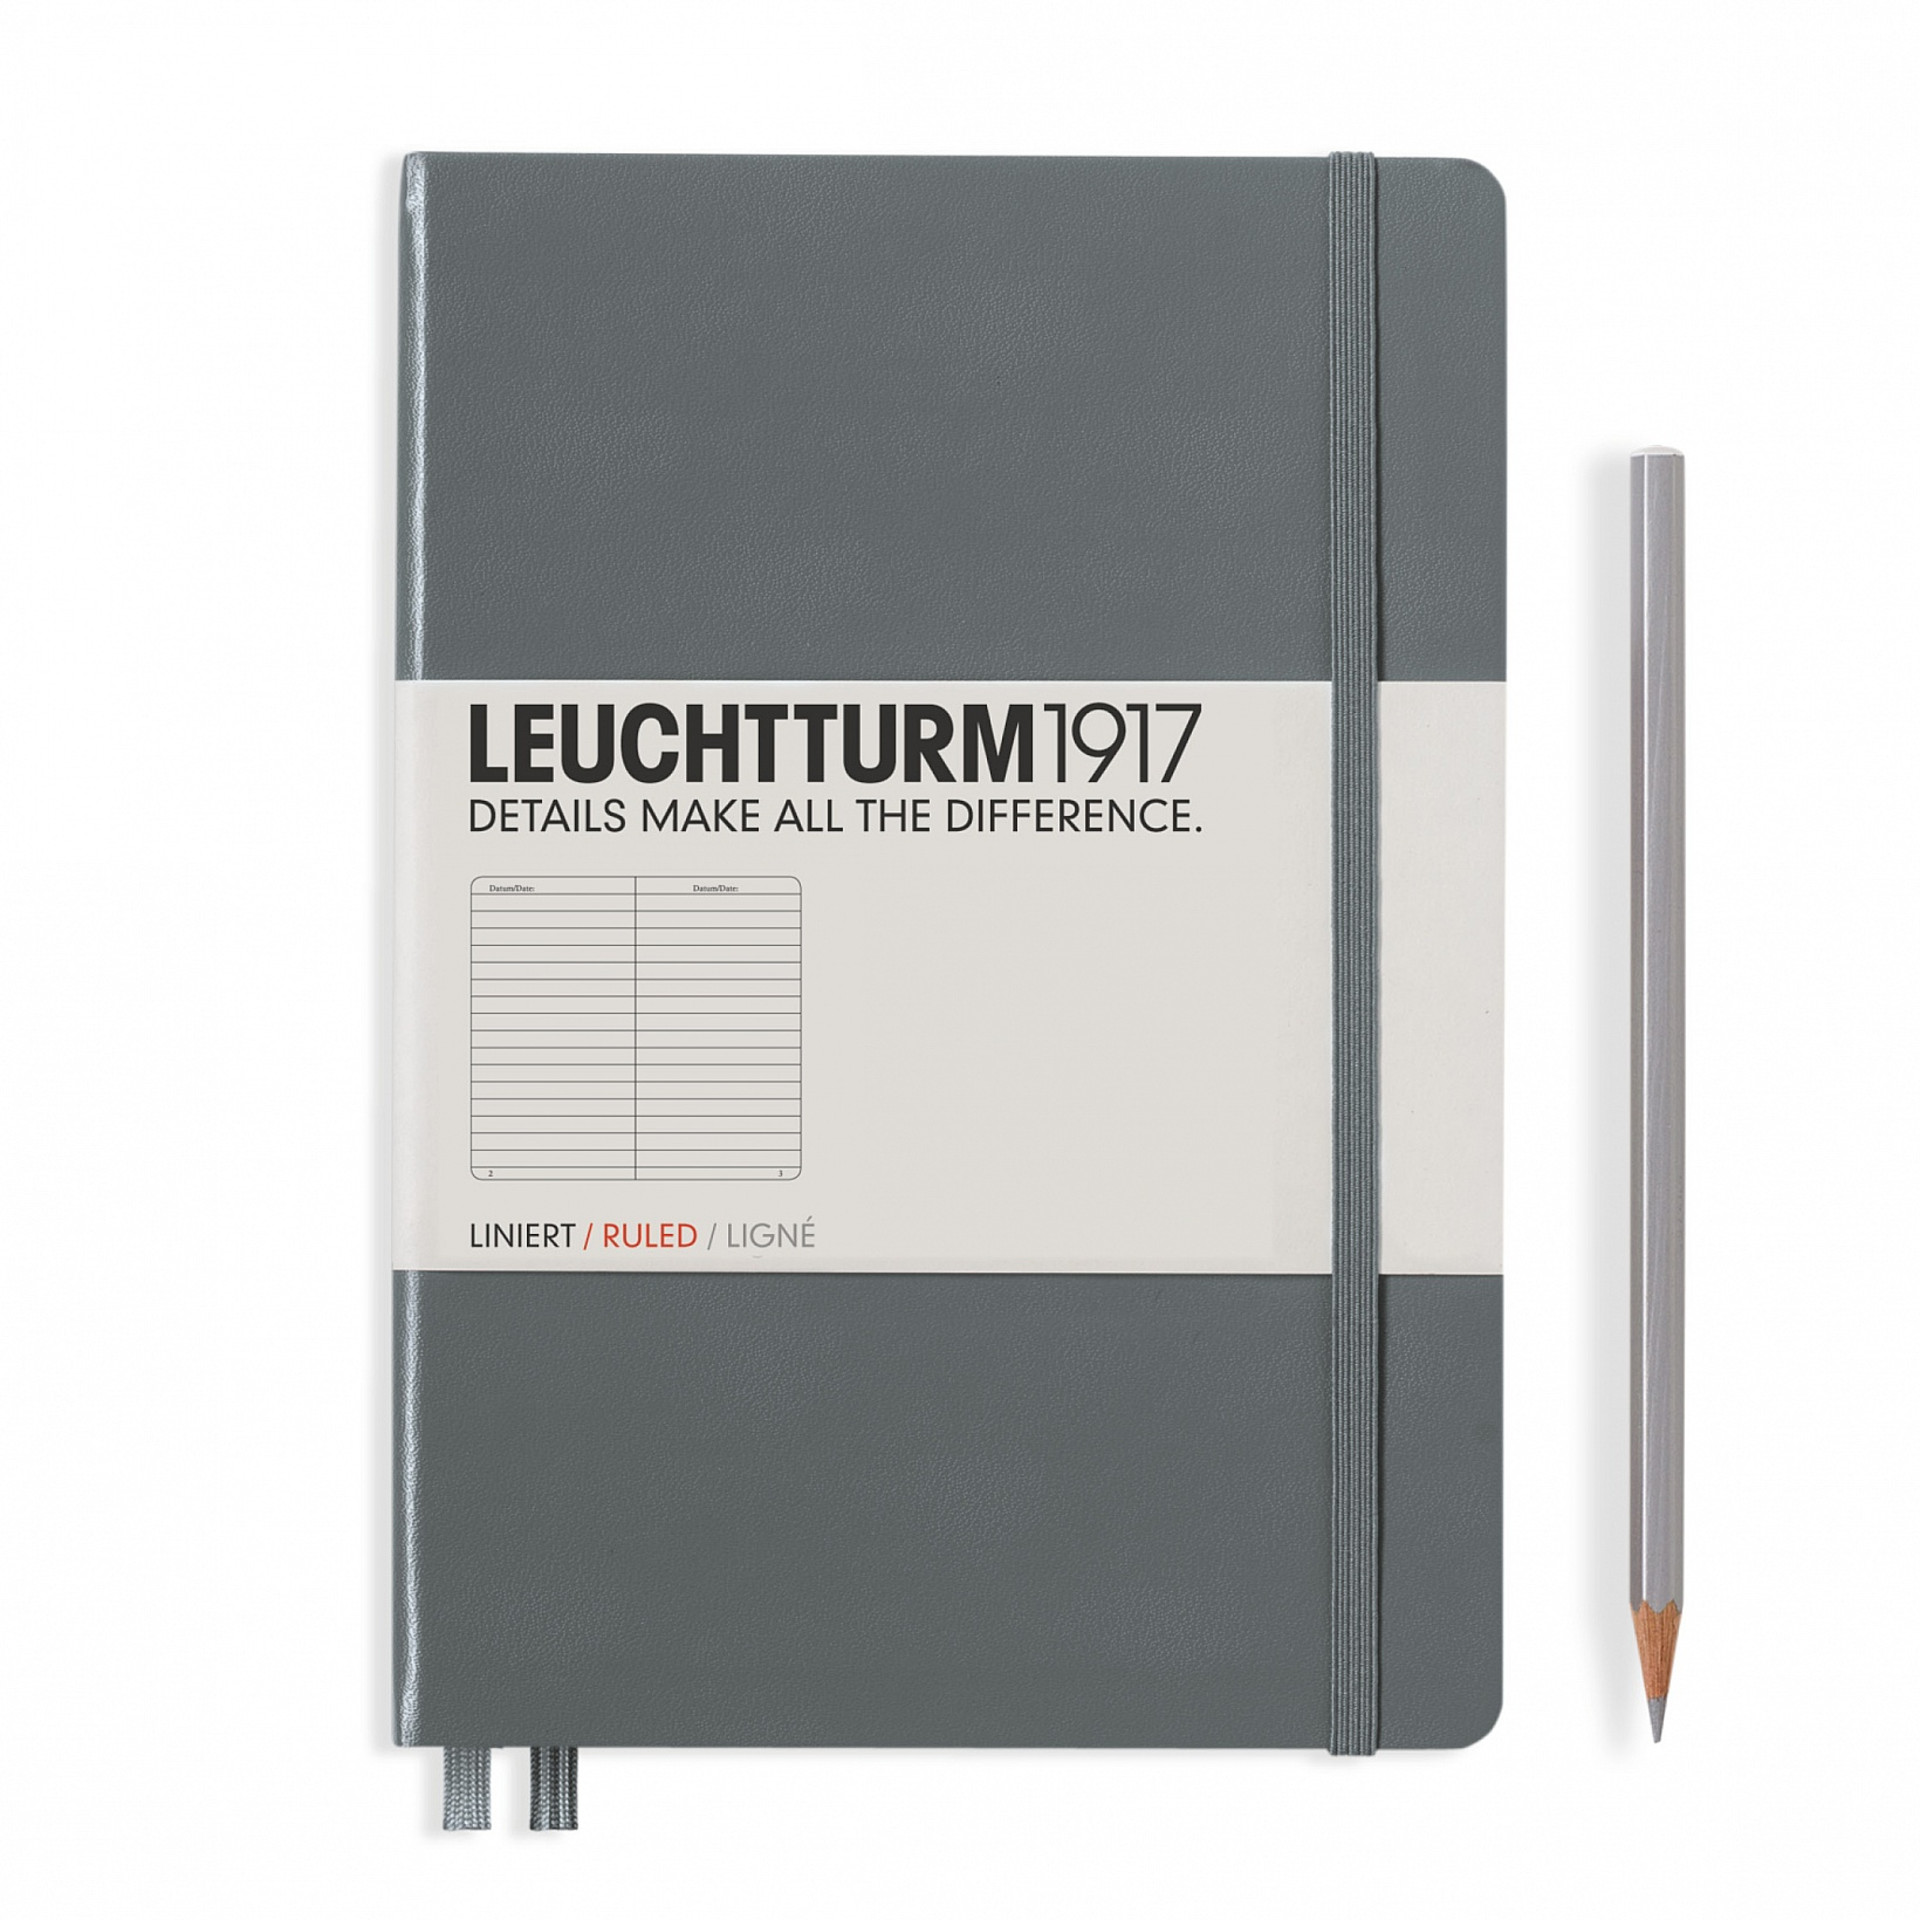 Leuchtturm 1917 A5 Medium Hardcover 249ct Anthracite Gray